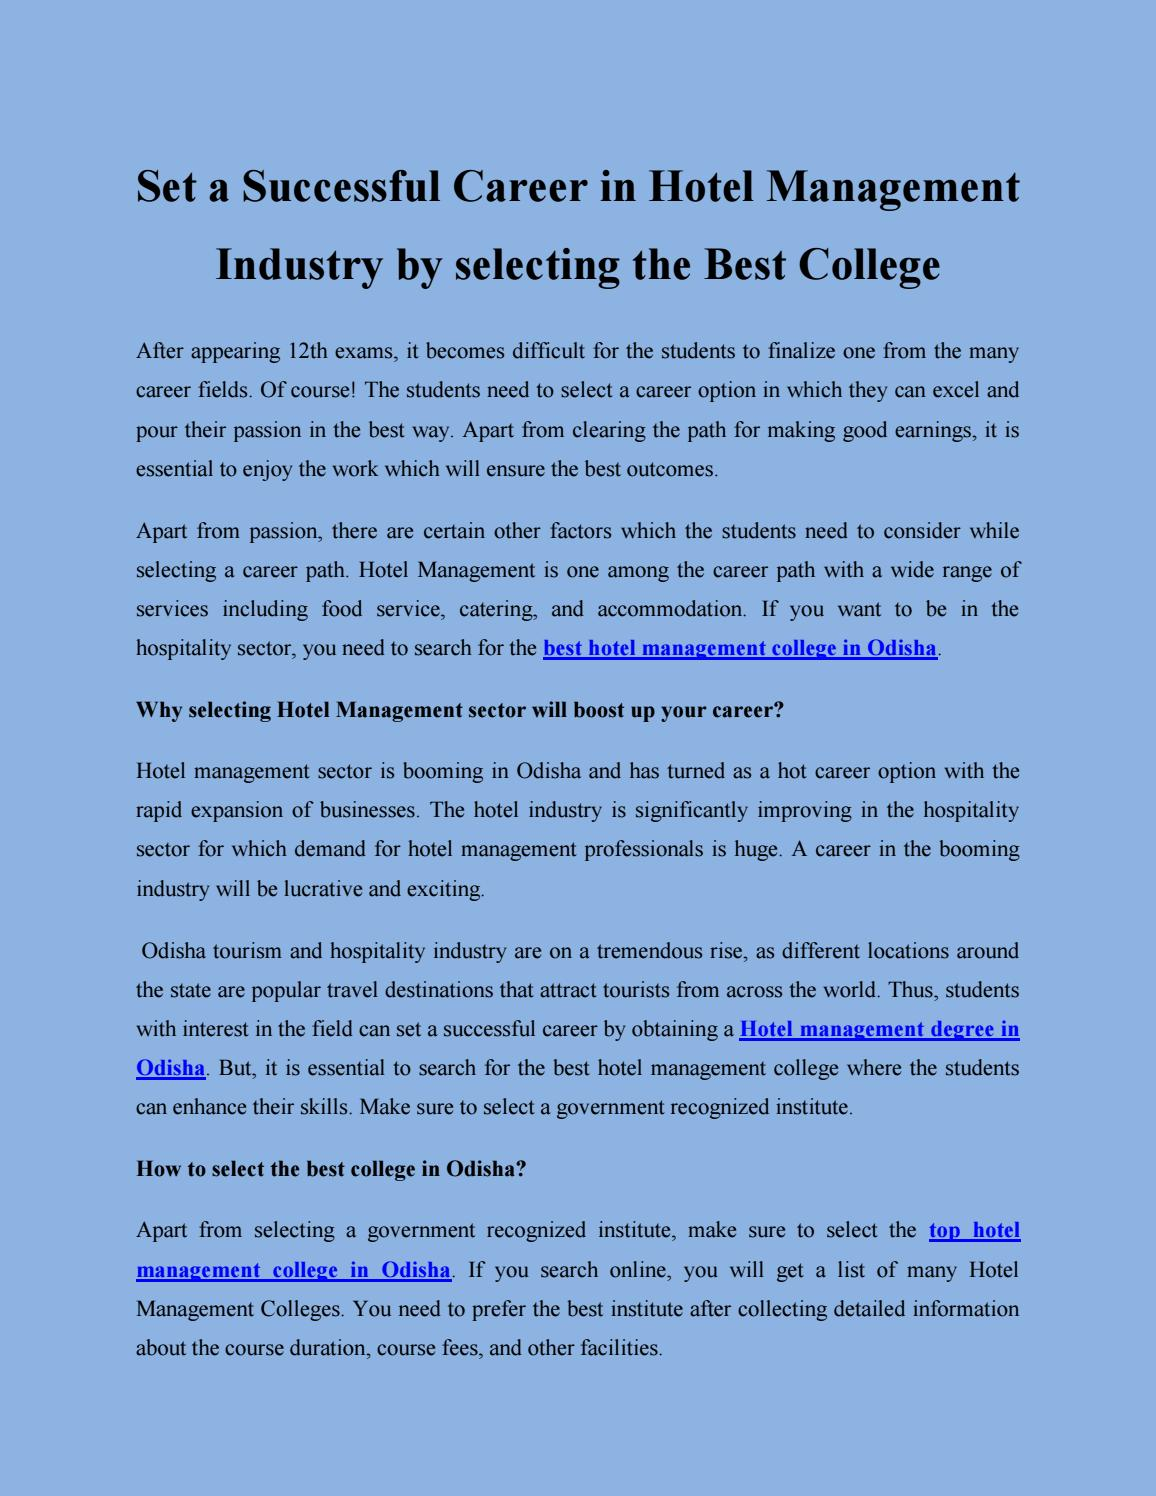 Top hotel Management College in Odisha by driemsgroup